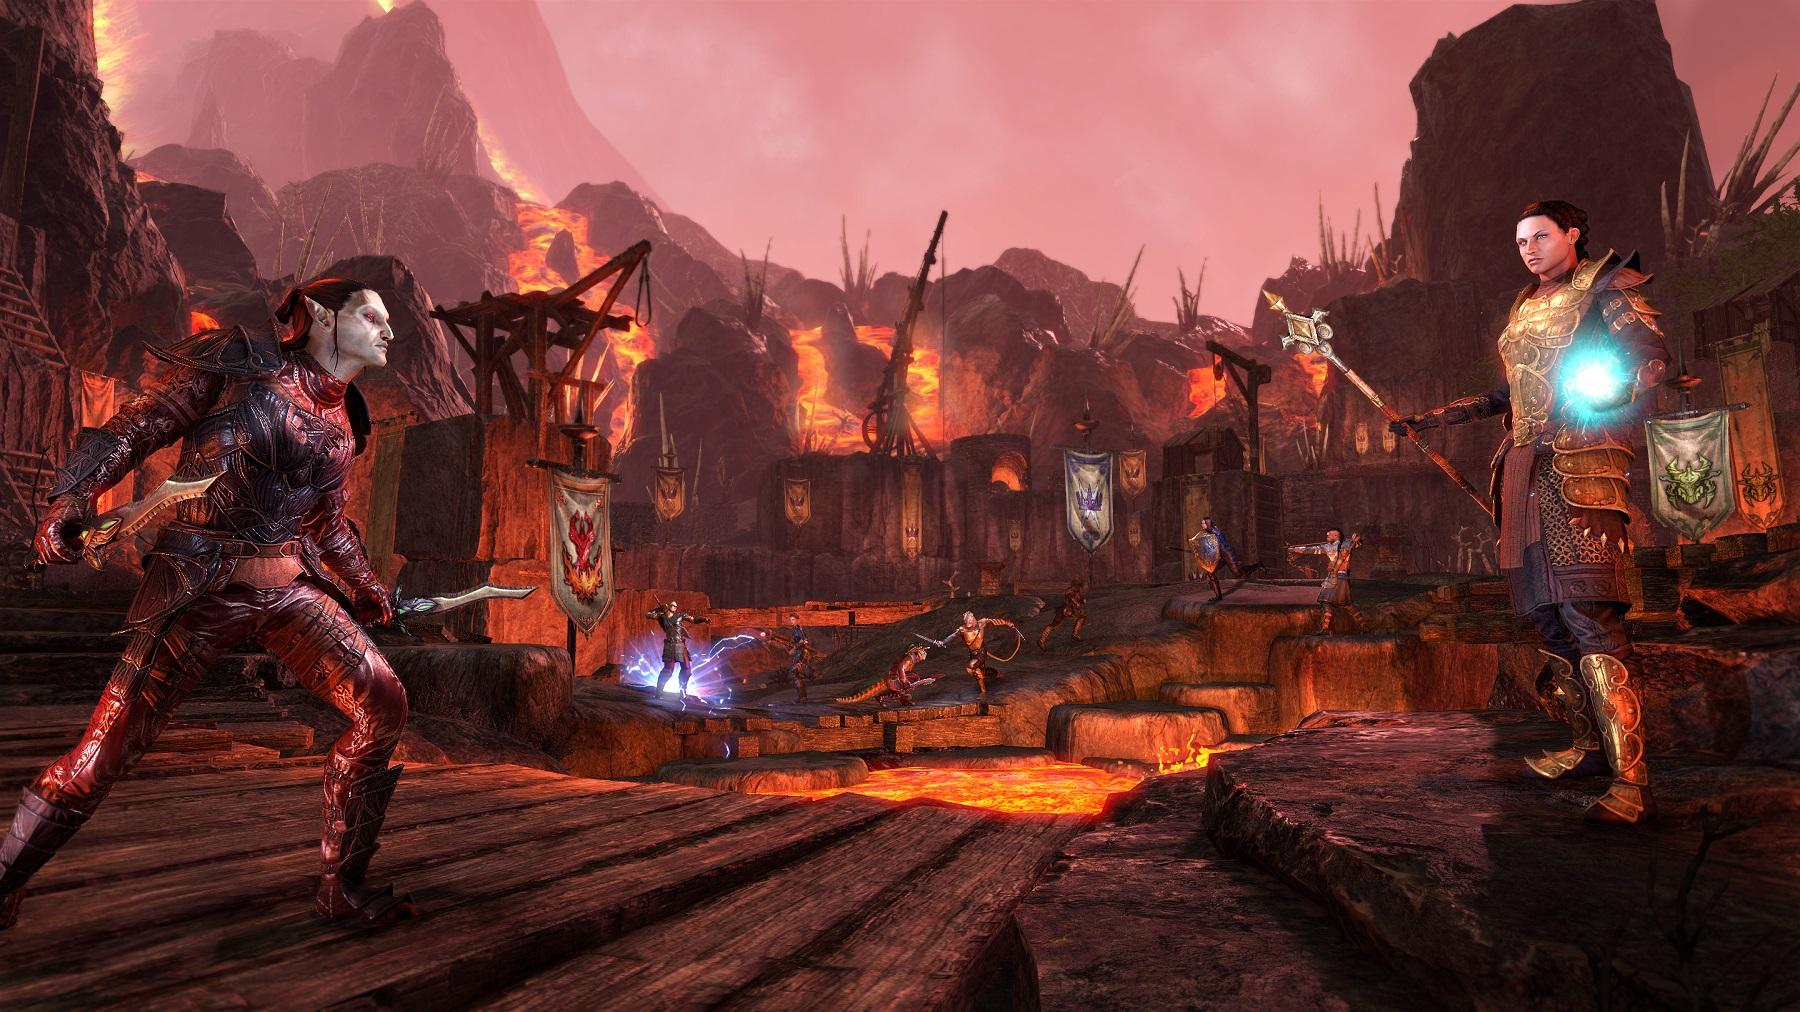 The Elder Scrolls Online Morrowind Gameplay Showcased In Brand New Trailer